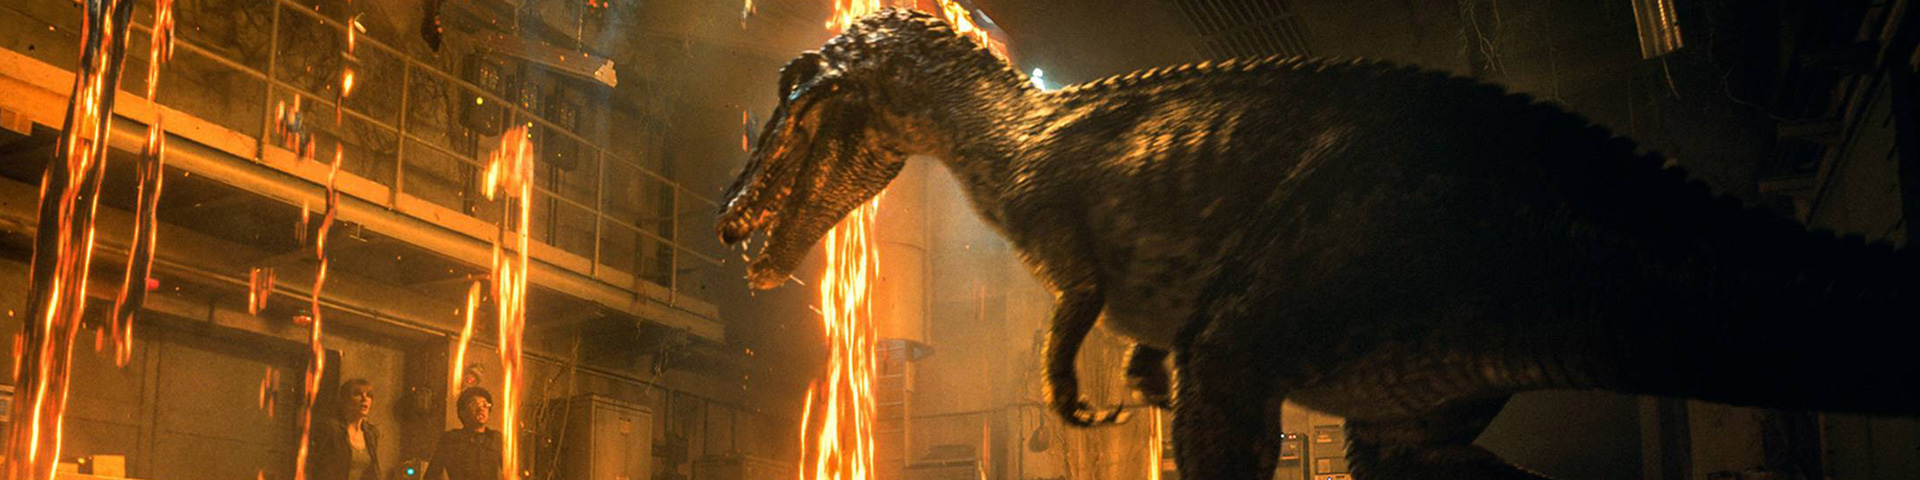 A bipedal dinosaur appears in a burning building, threatening a man and a woman who appear off to the left.